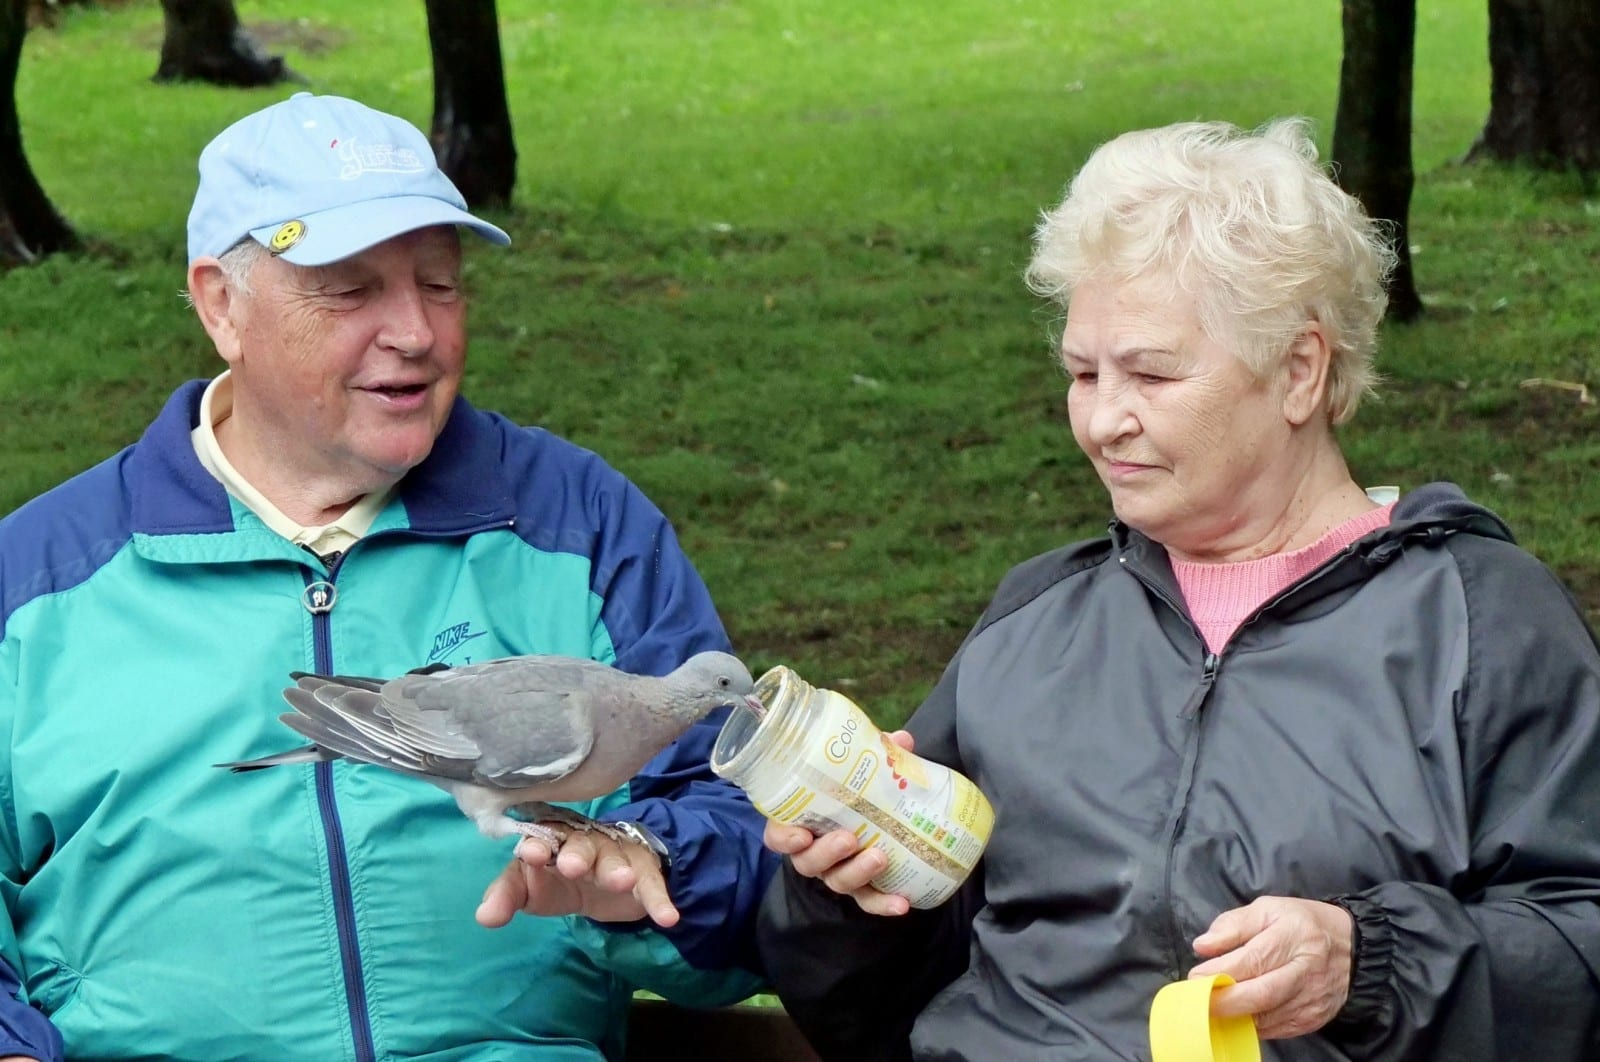 Pigeon Rescued By Kind Retired Couple Now Visits Them Every Day In The Park